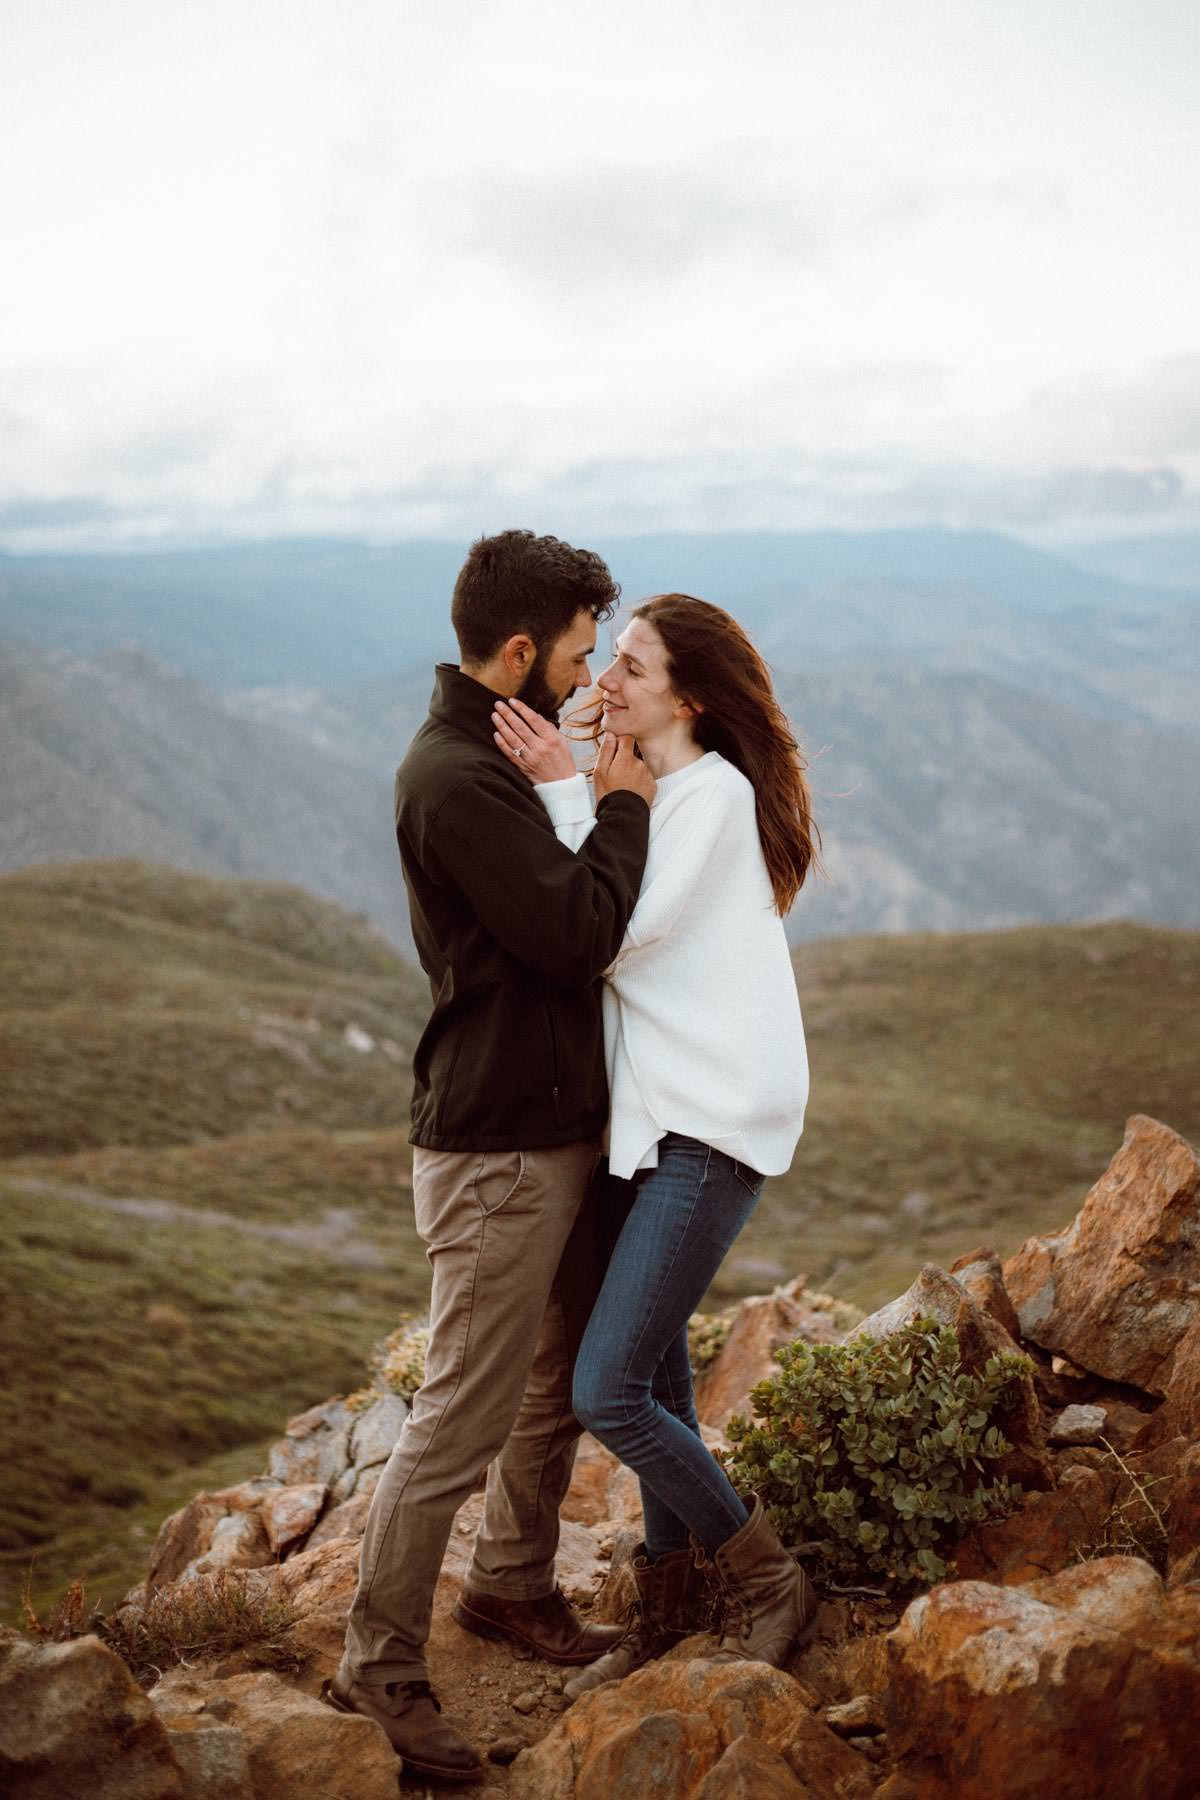 mount laguna engagement shoot sweet look sweet look